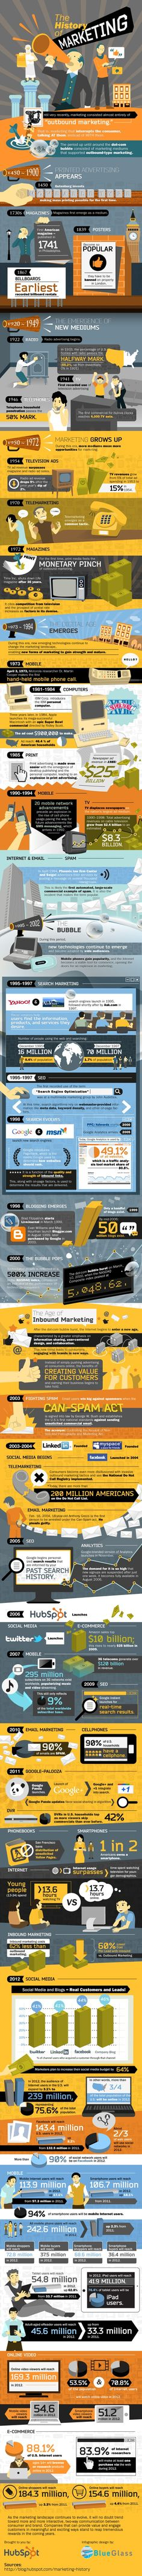 Wow! Everyone needs to see this.. The history of #marketing